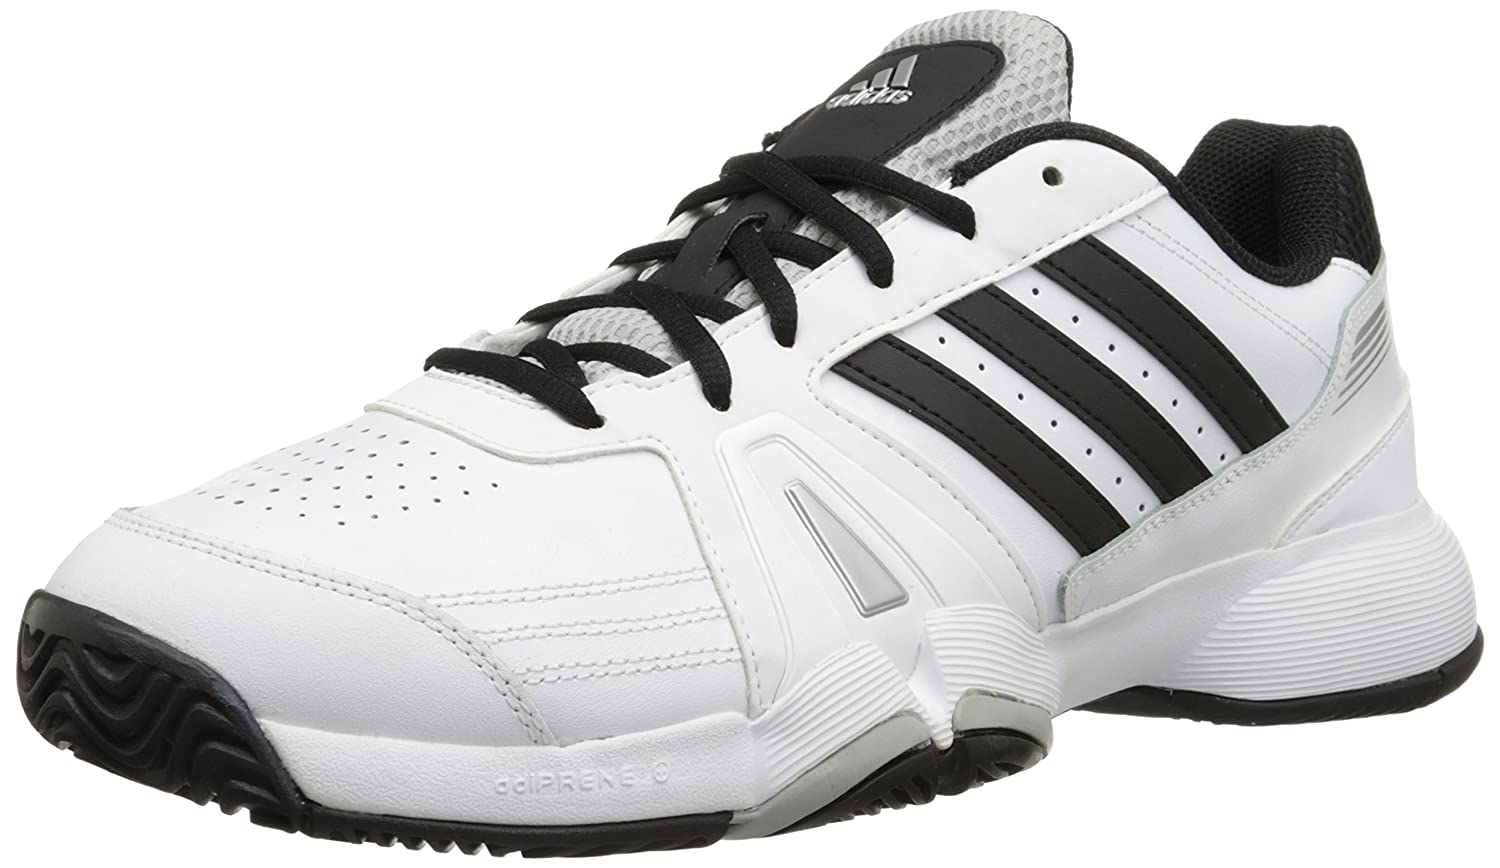 Amazon.com | adidas Performance Men's Bercuda 3 Wide Tennis Shoe, Ftwr White/Black/Metallic/Silver,  13.5 W US | Tennis & Racquet Sports